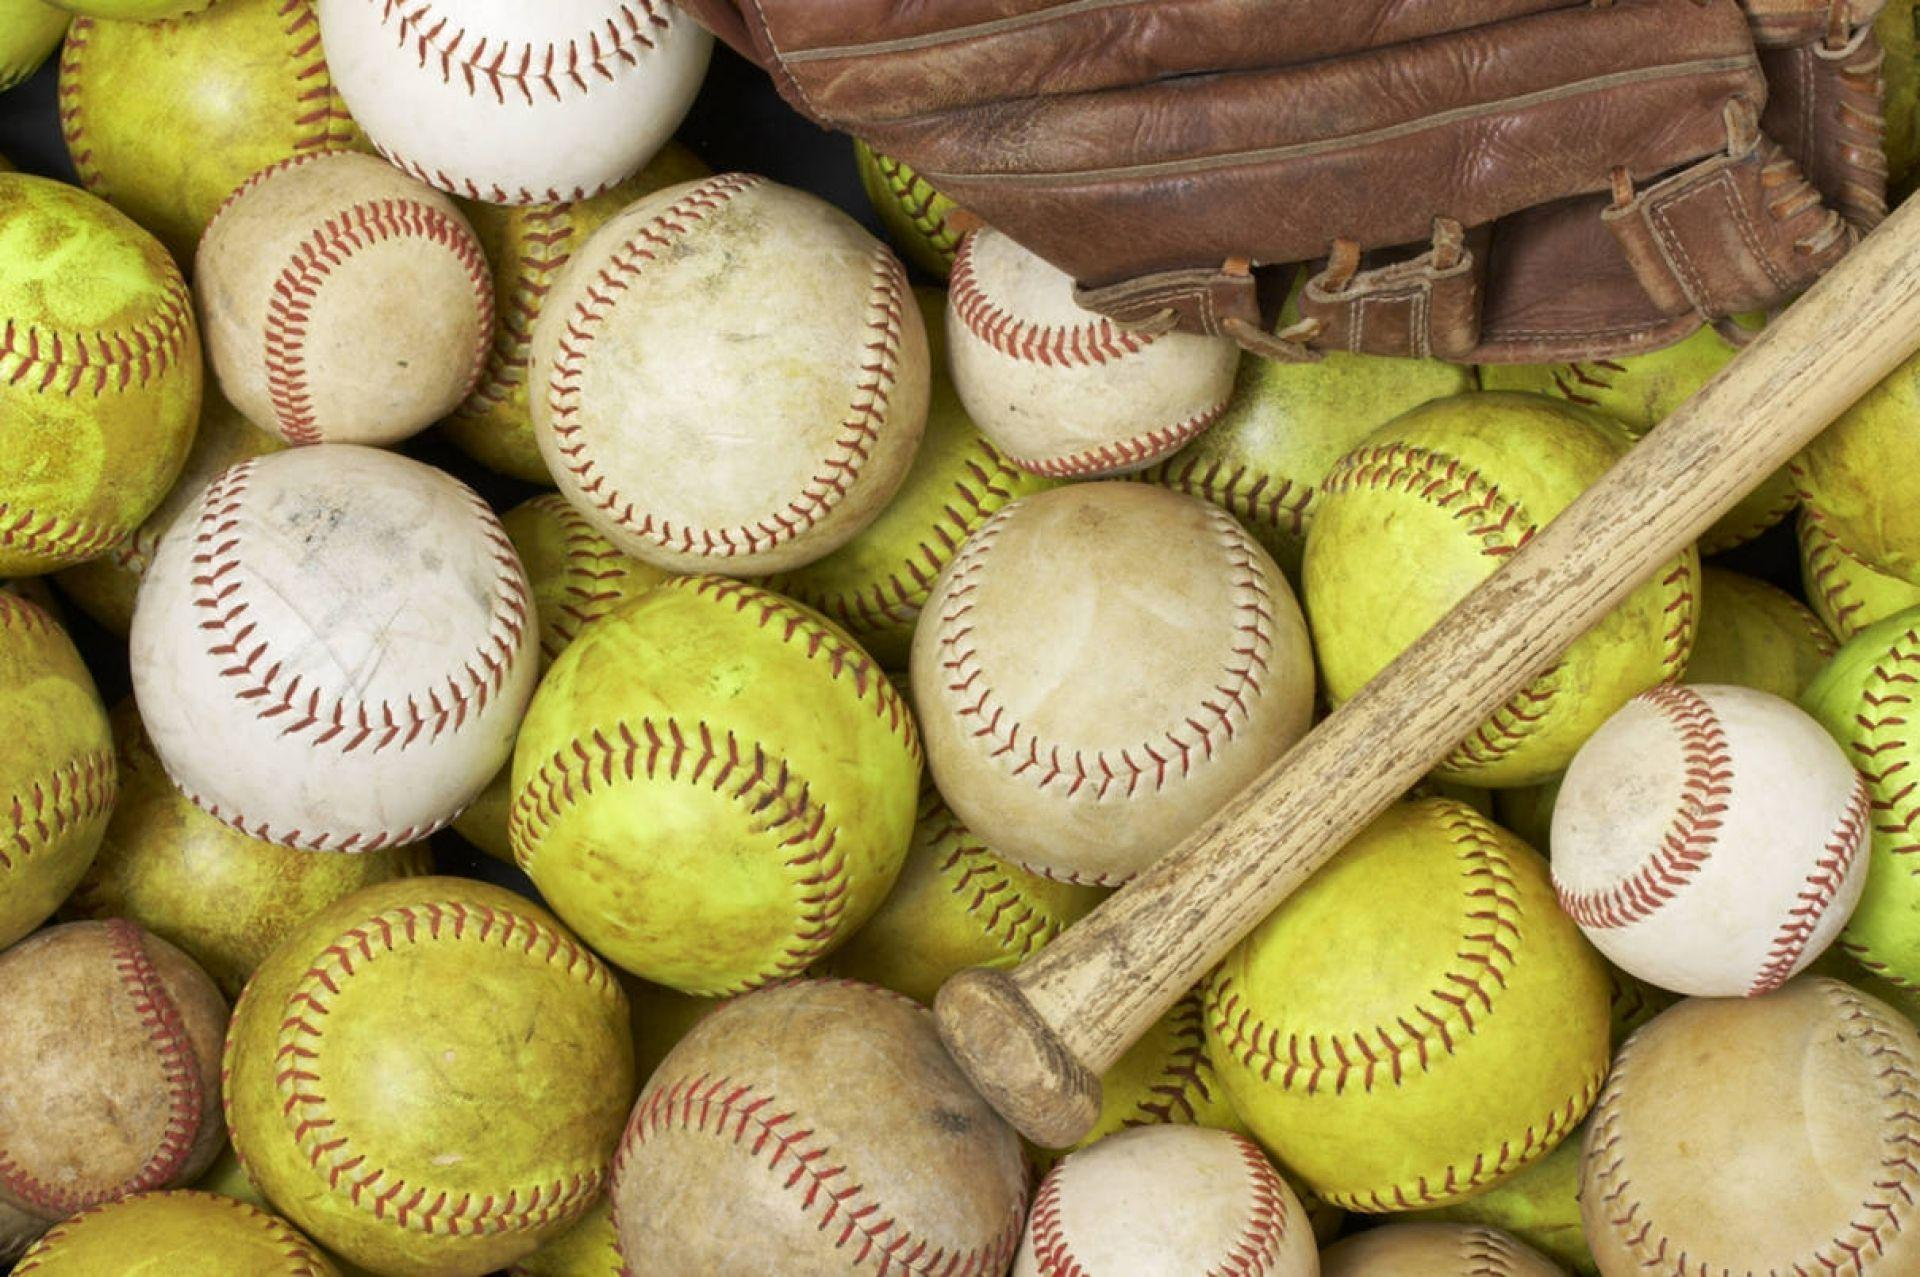 Softball Wallpapers Free - wallpaper hd